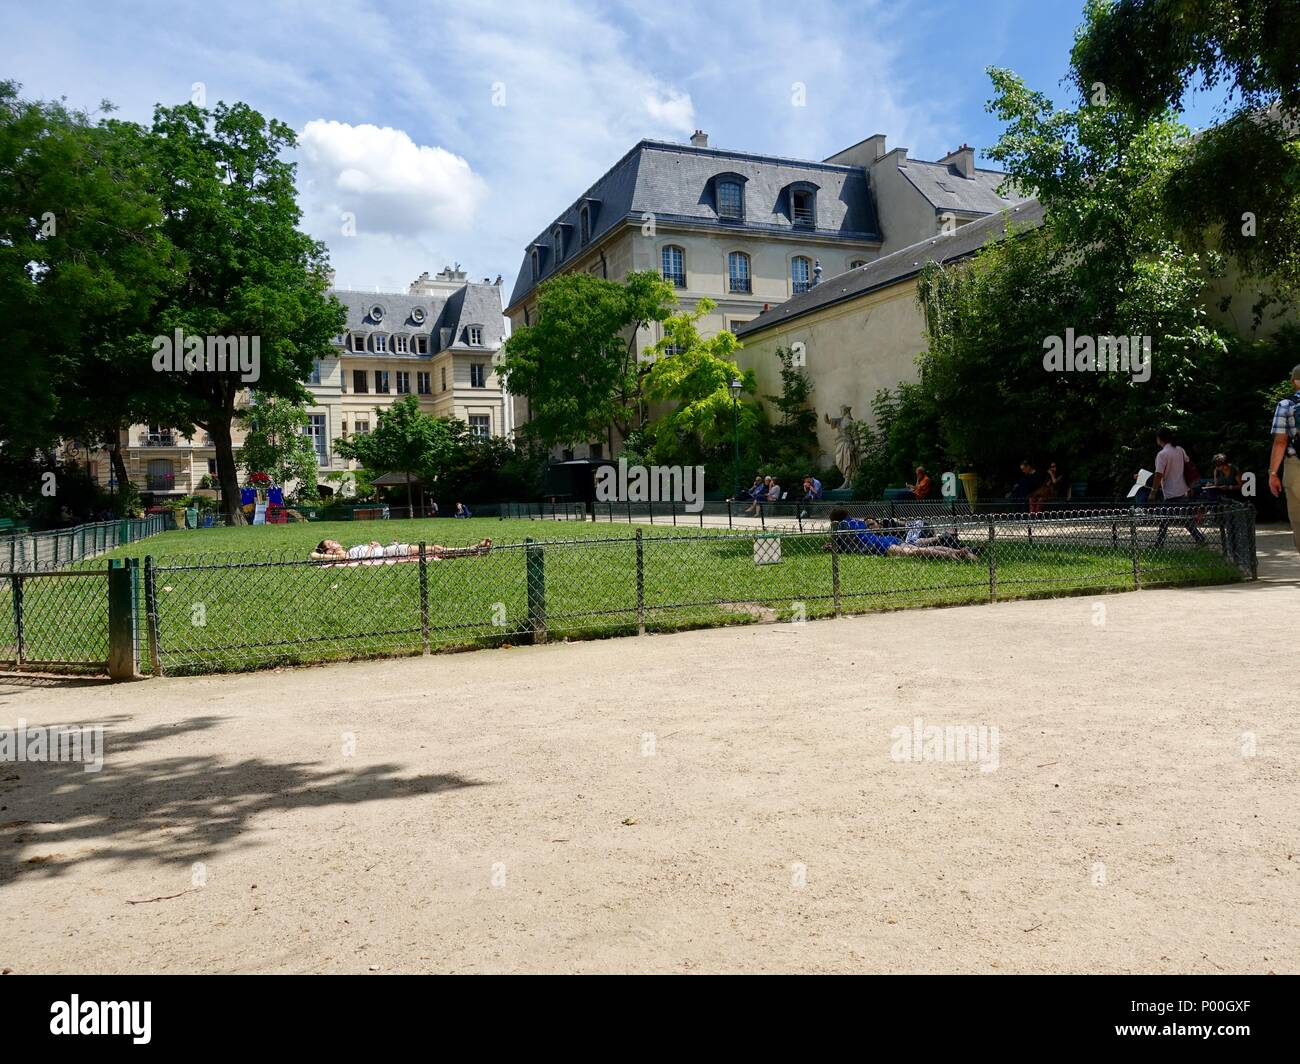 Parisians relaxing in Park Léopold-Achille and enjoying the fine June weather. Paris, France - Stock Image